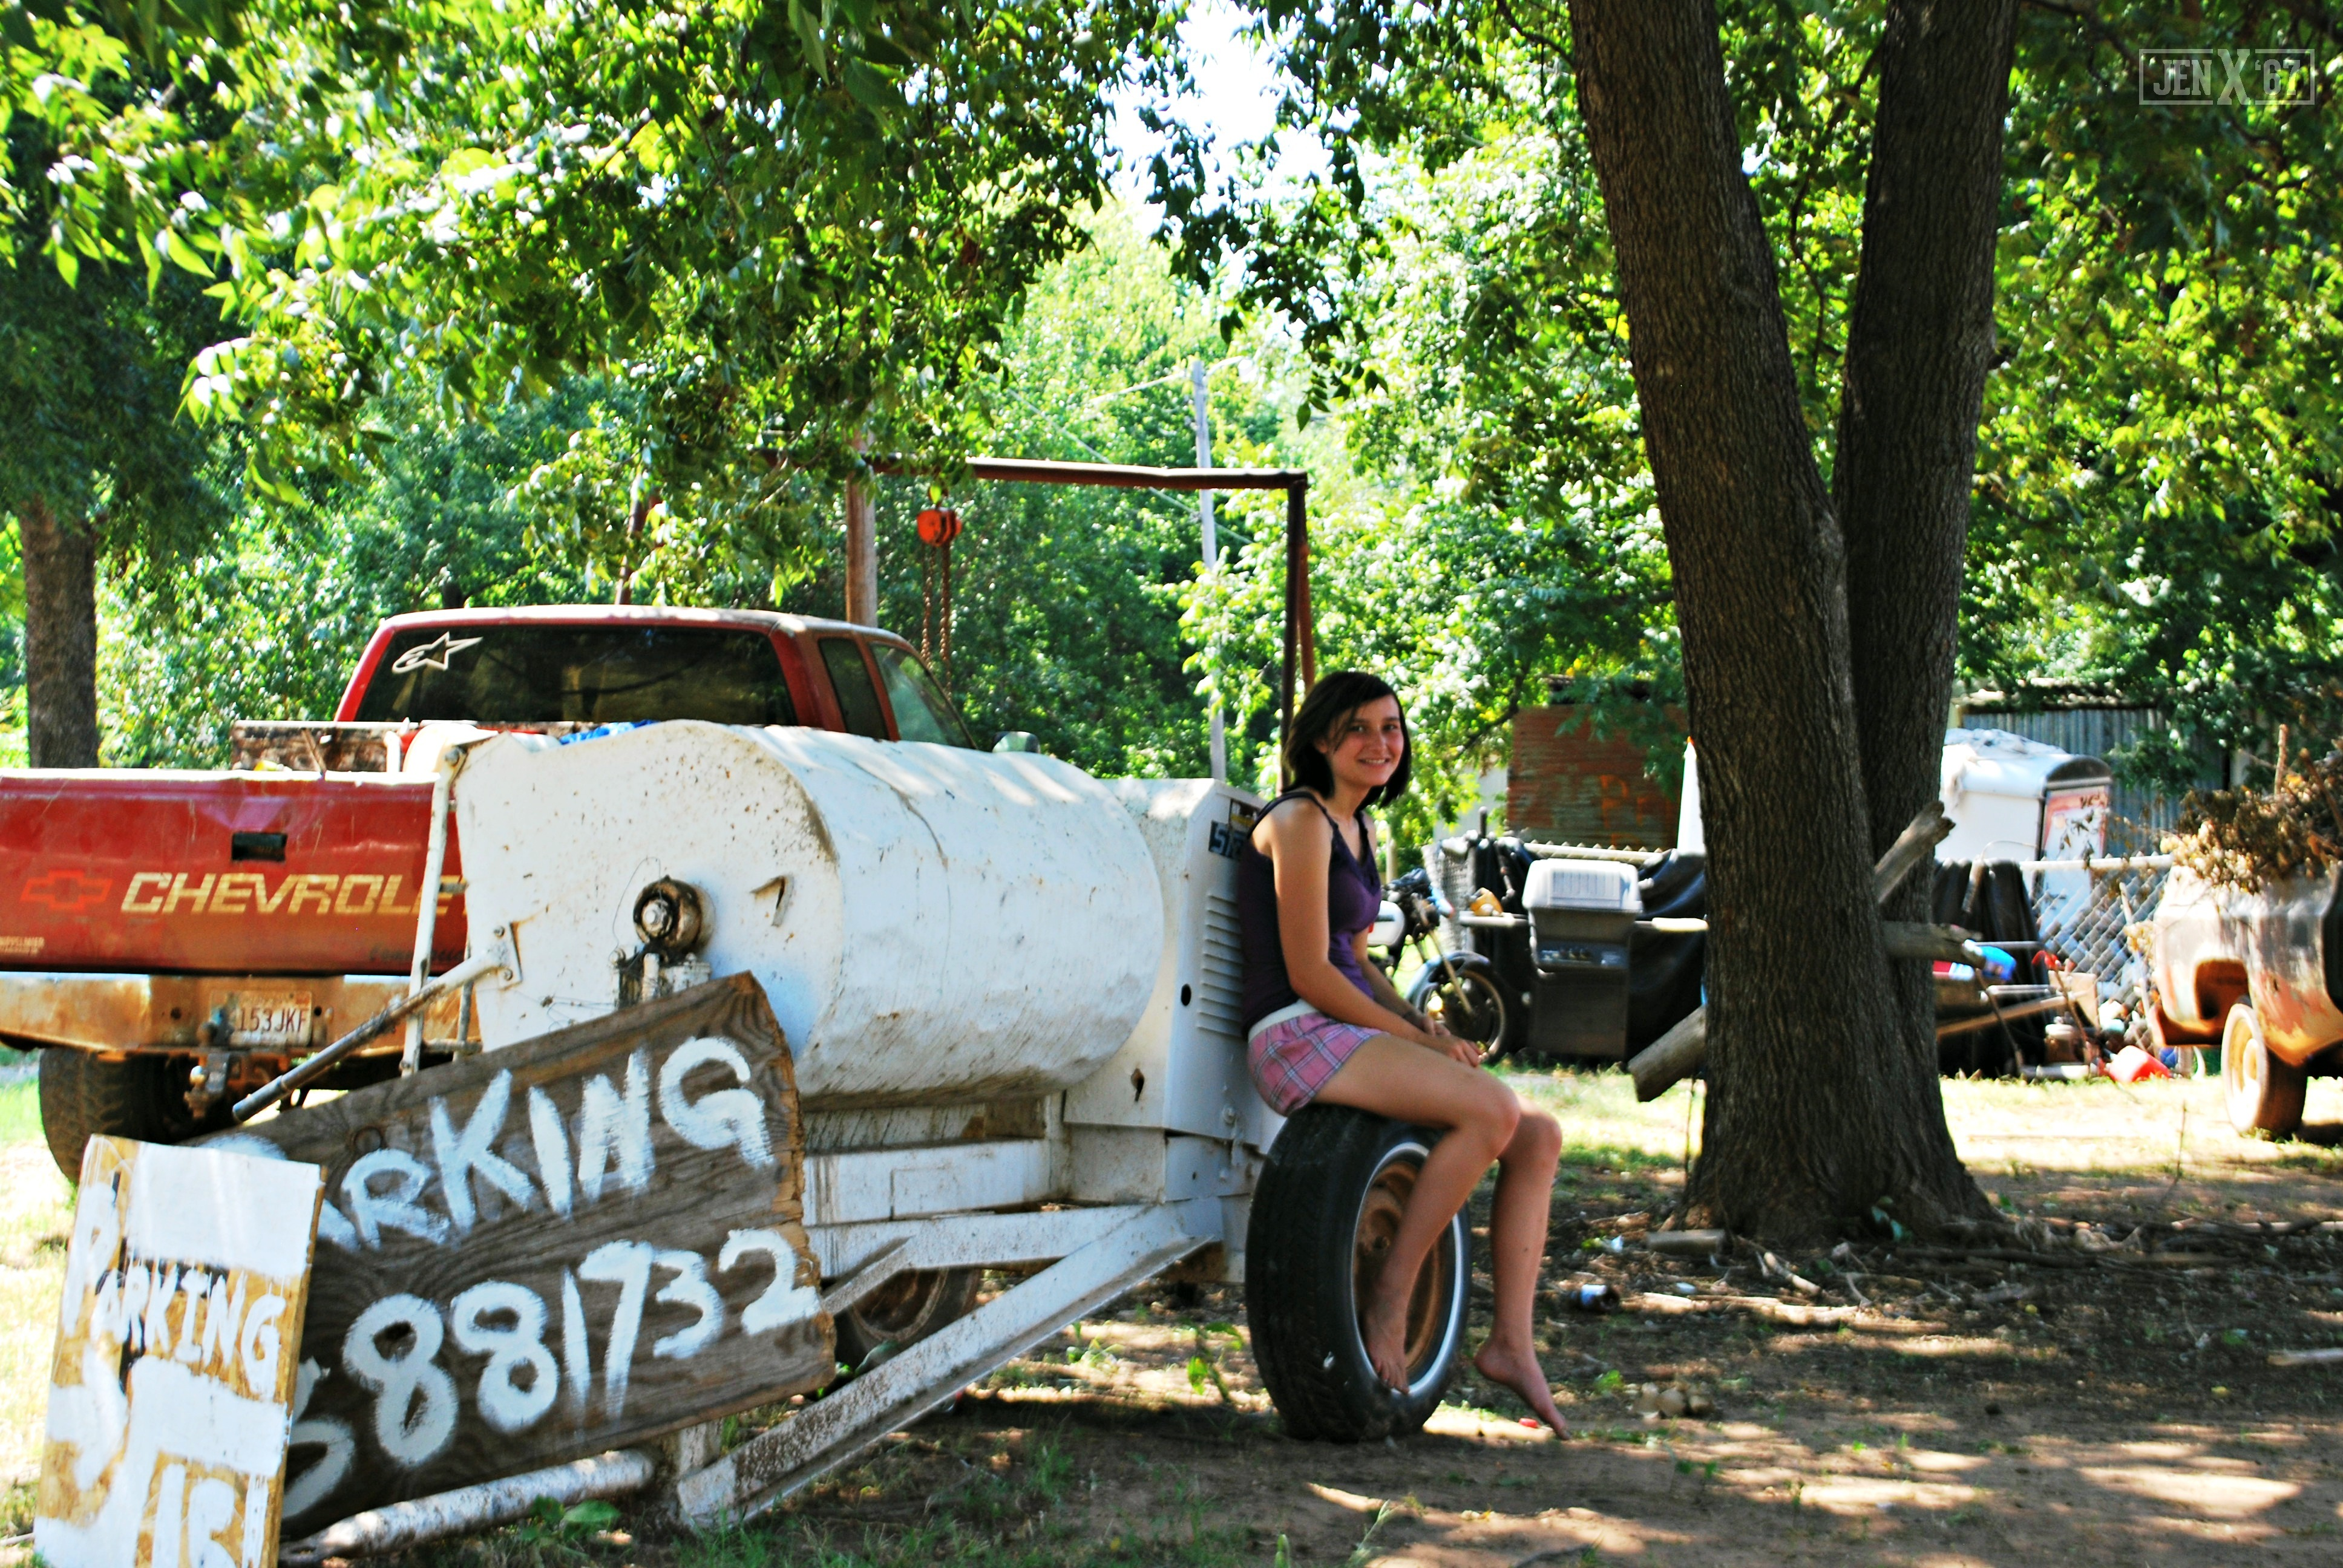 Life in the Heartland and an klahoma Girl